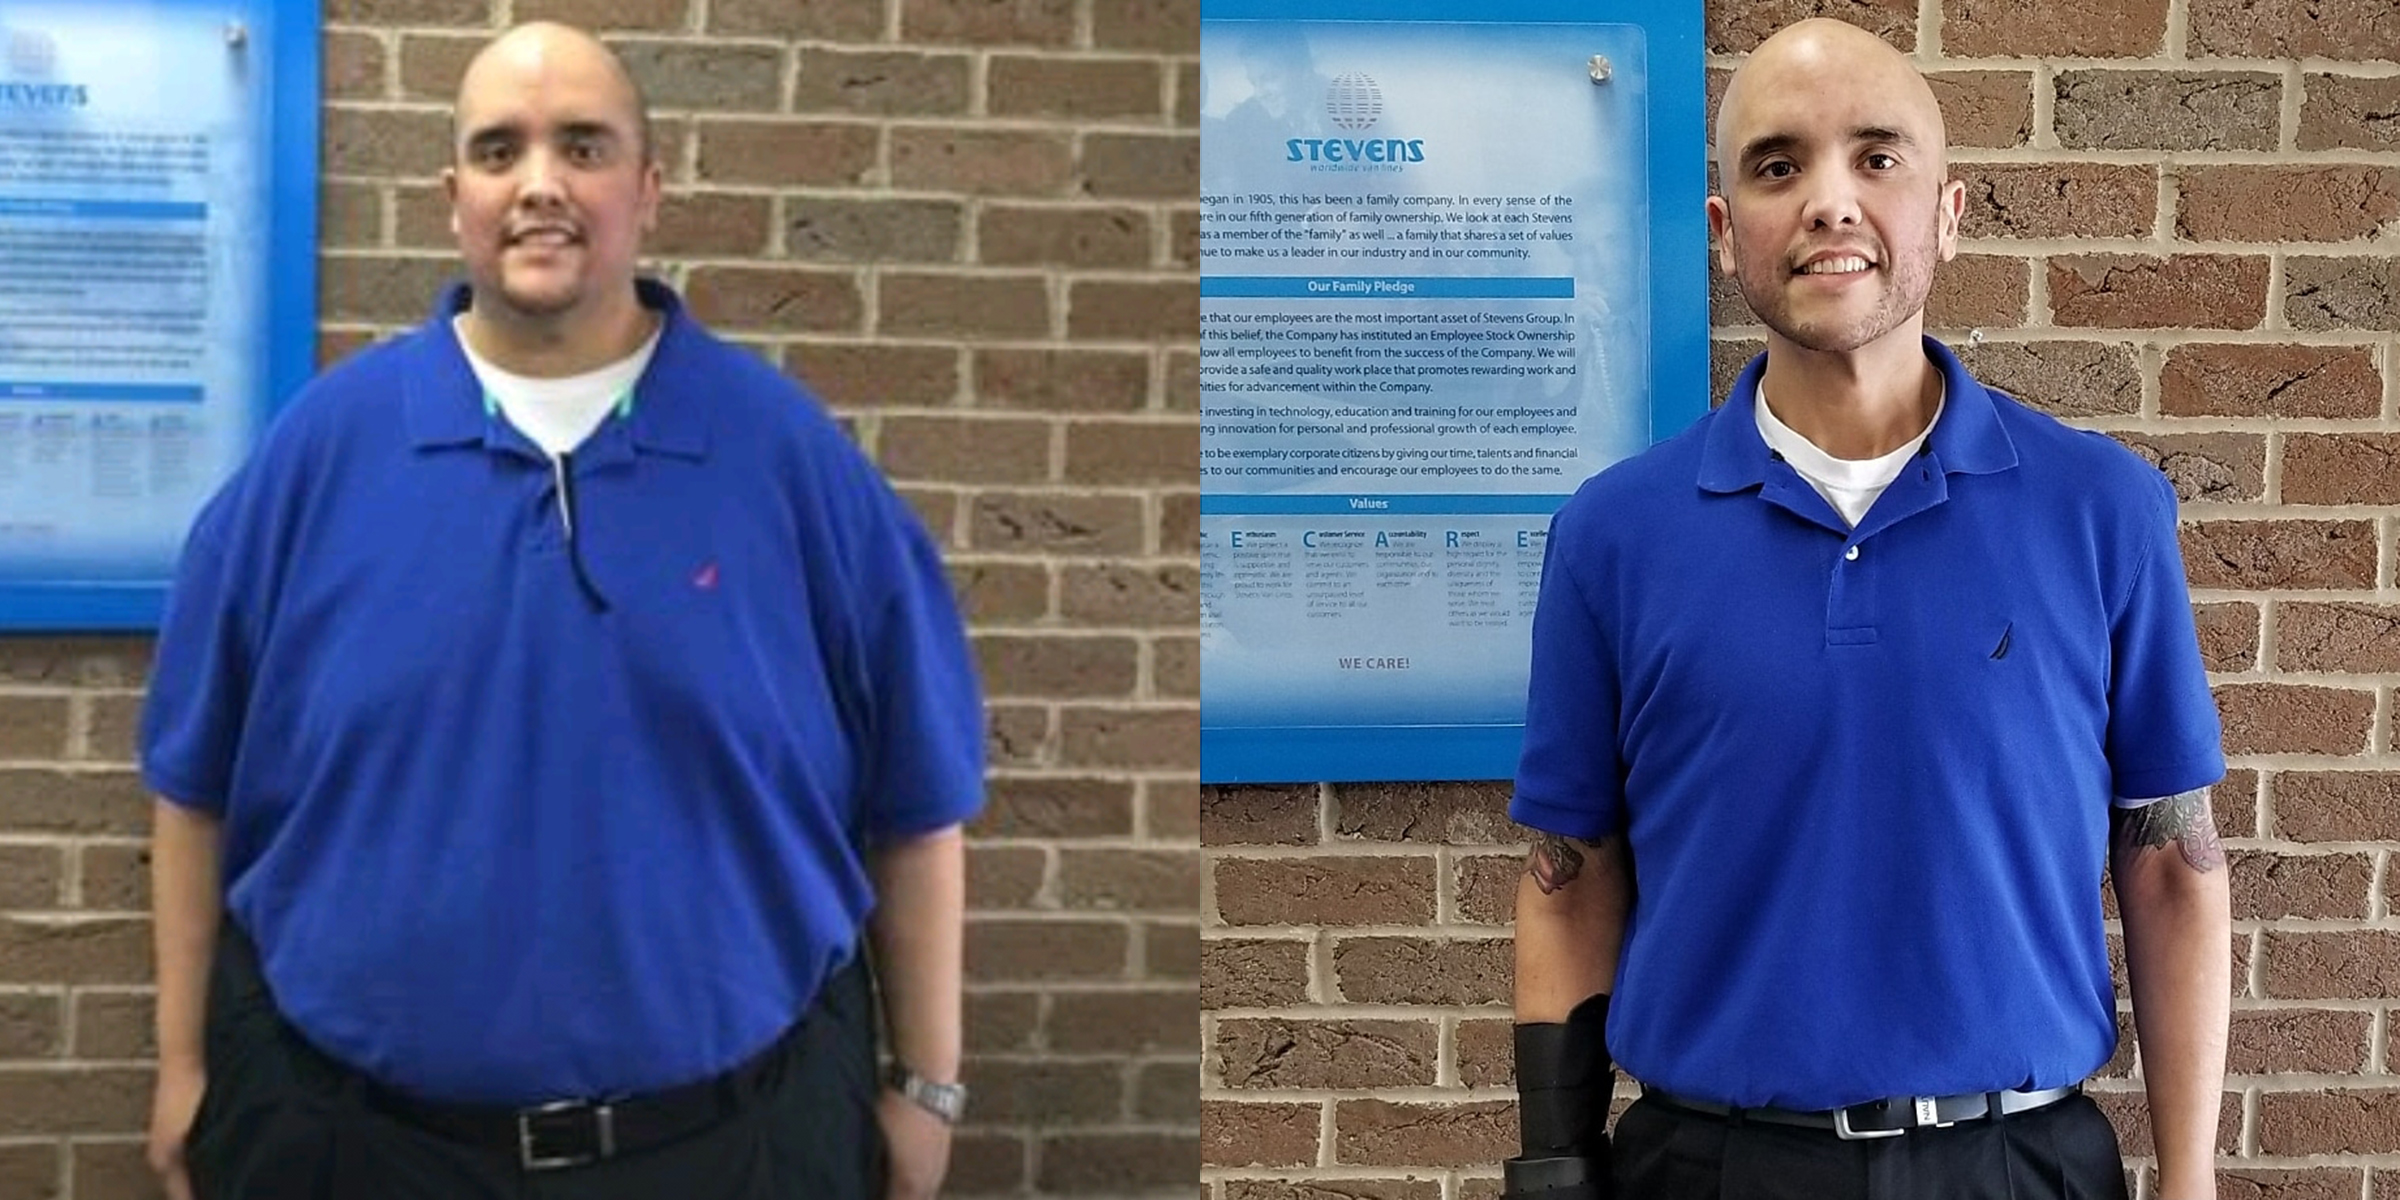 This man lost over 450 pounds and just completed his first marathon